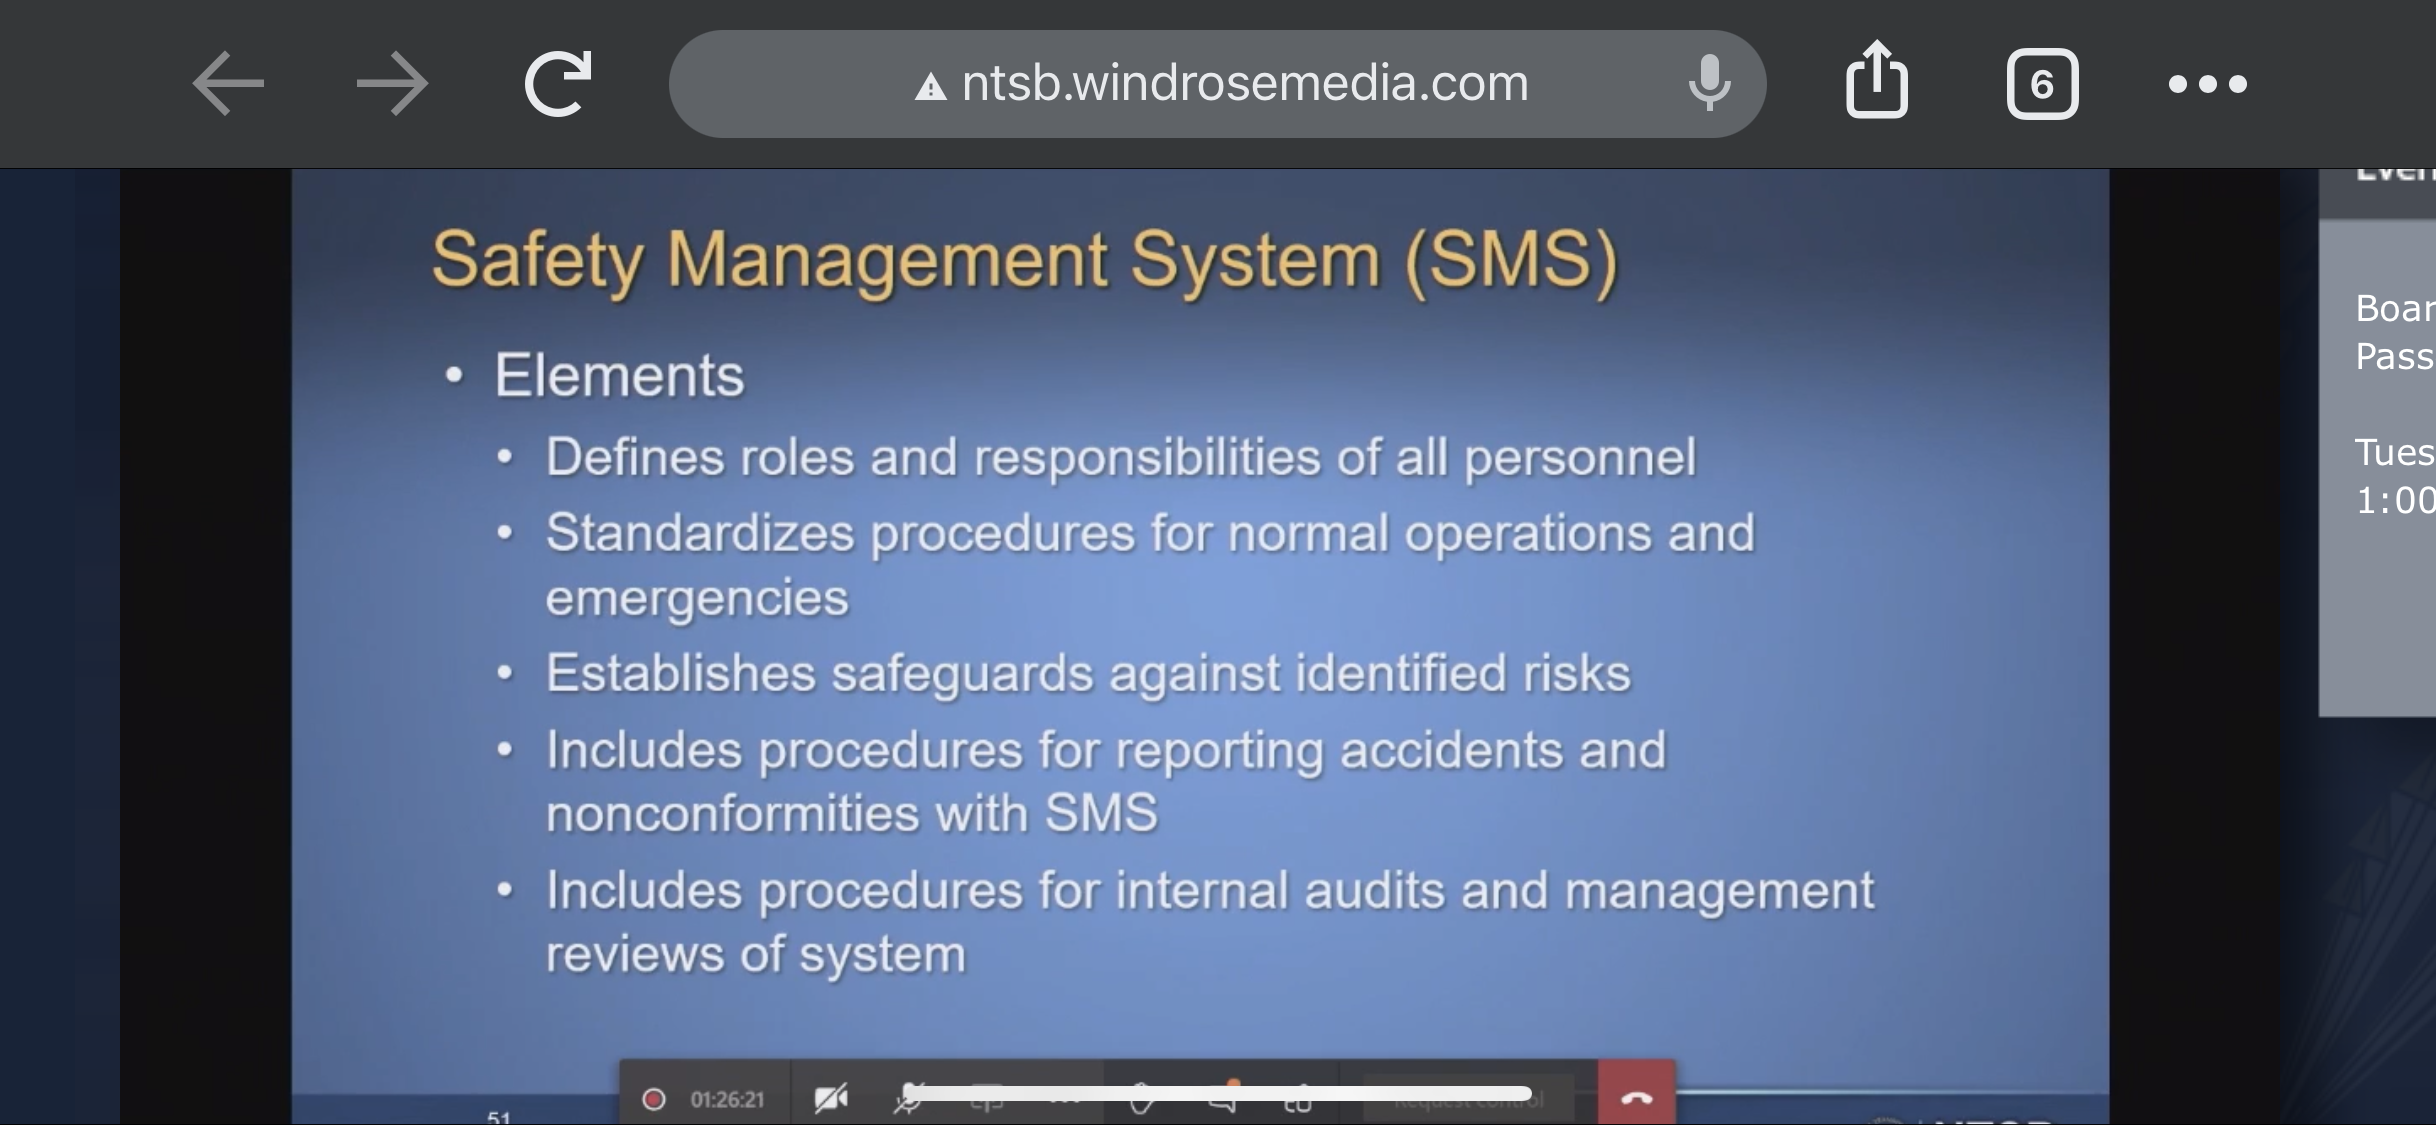 About The Safety Management System (SMS) on maritime vessels